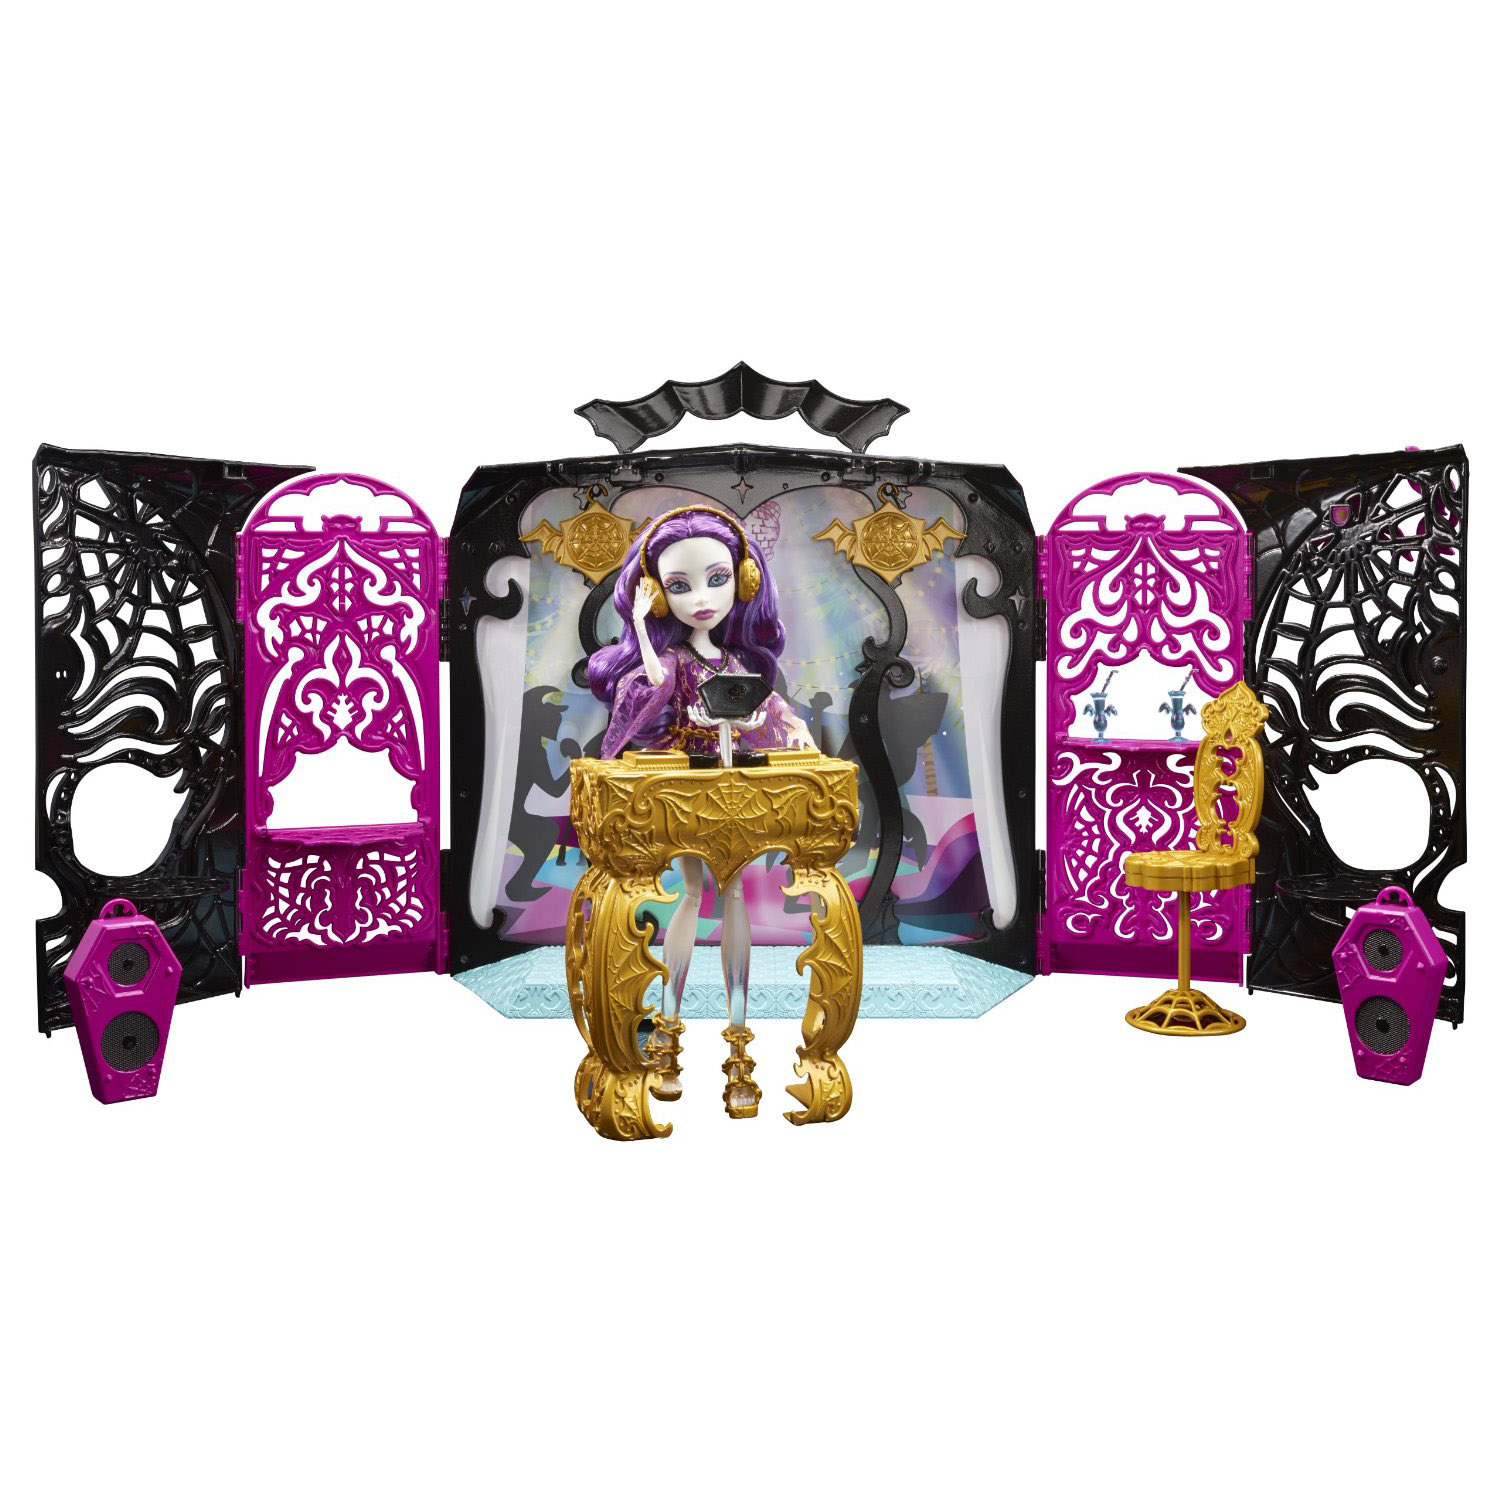 Monster High Toys : Monster high toys wishes room party set at toystop